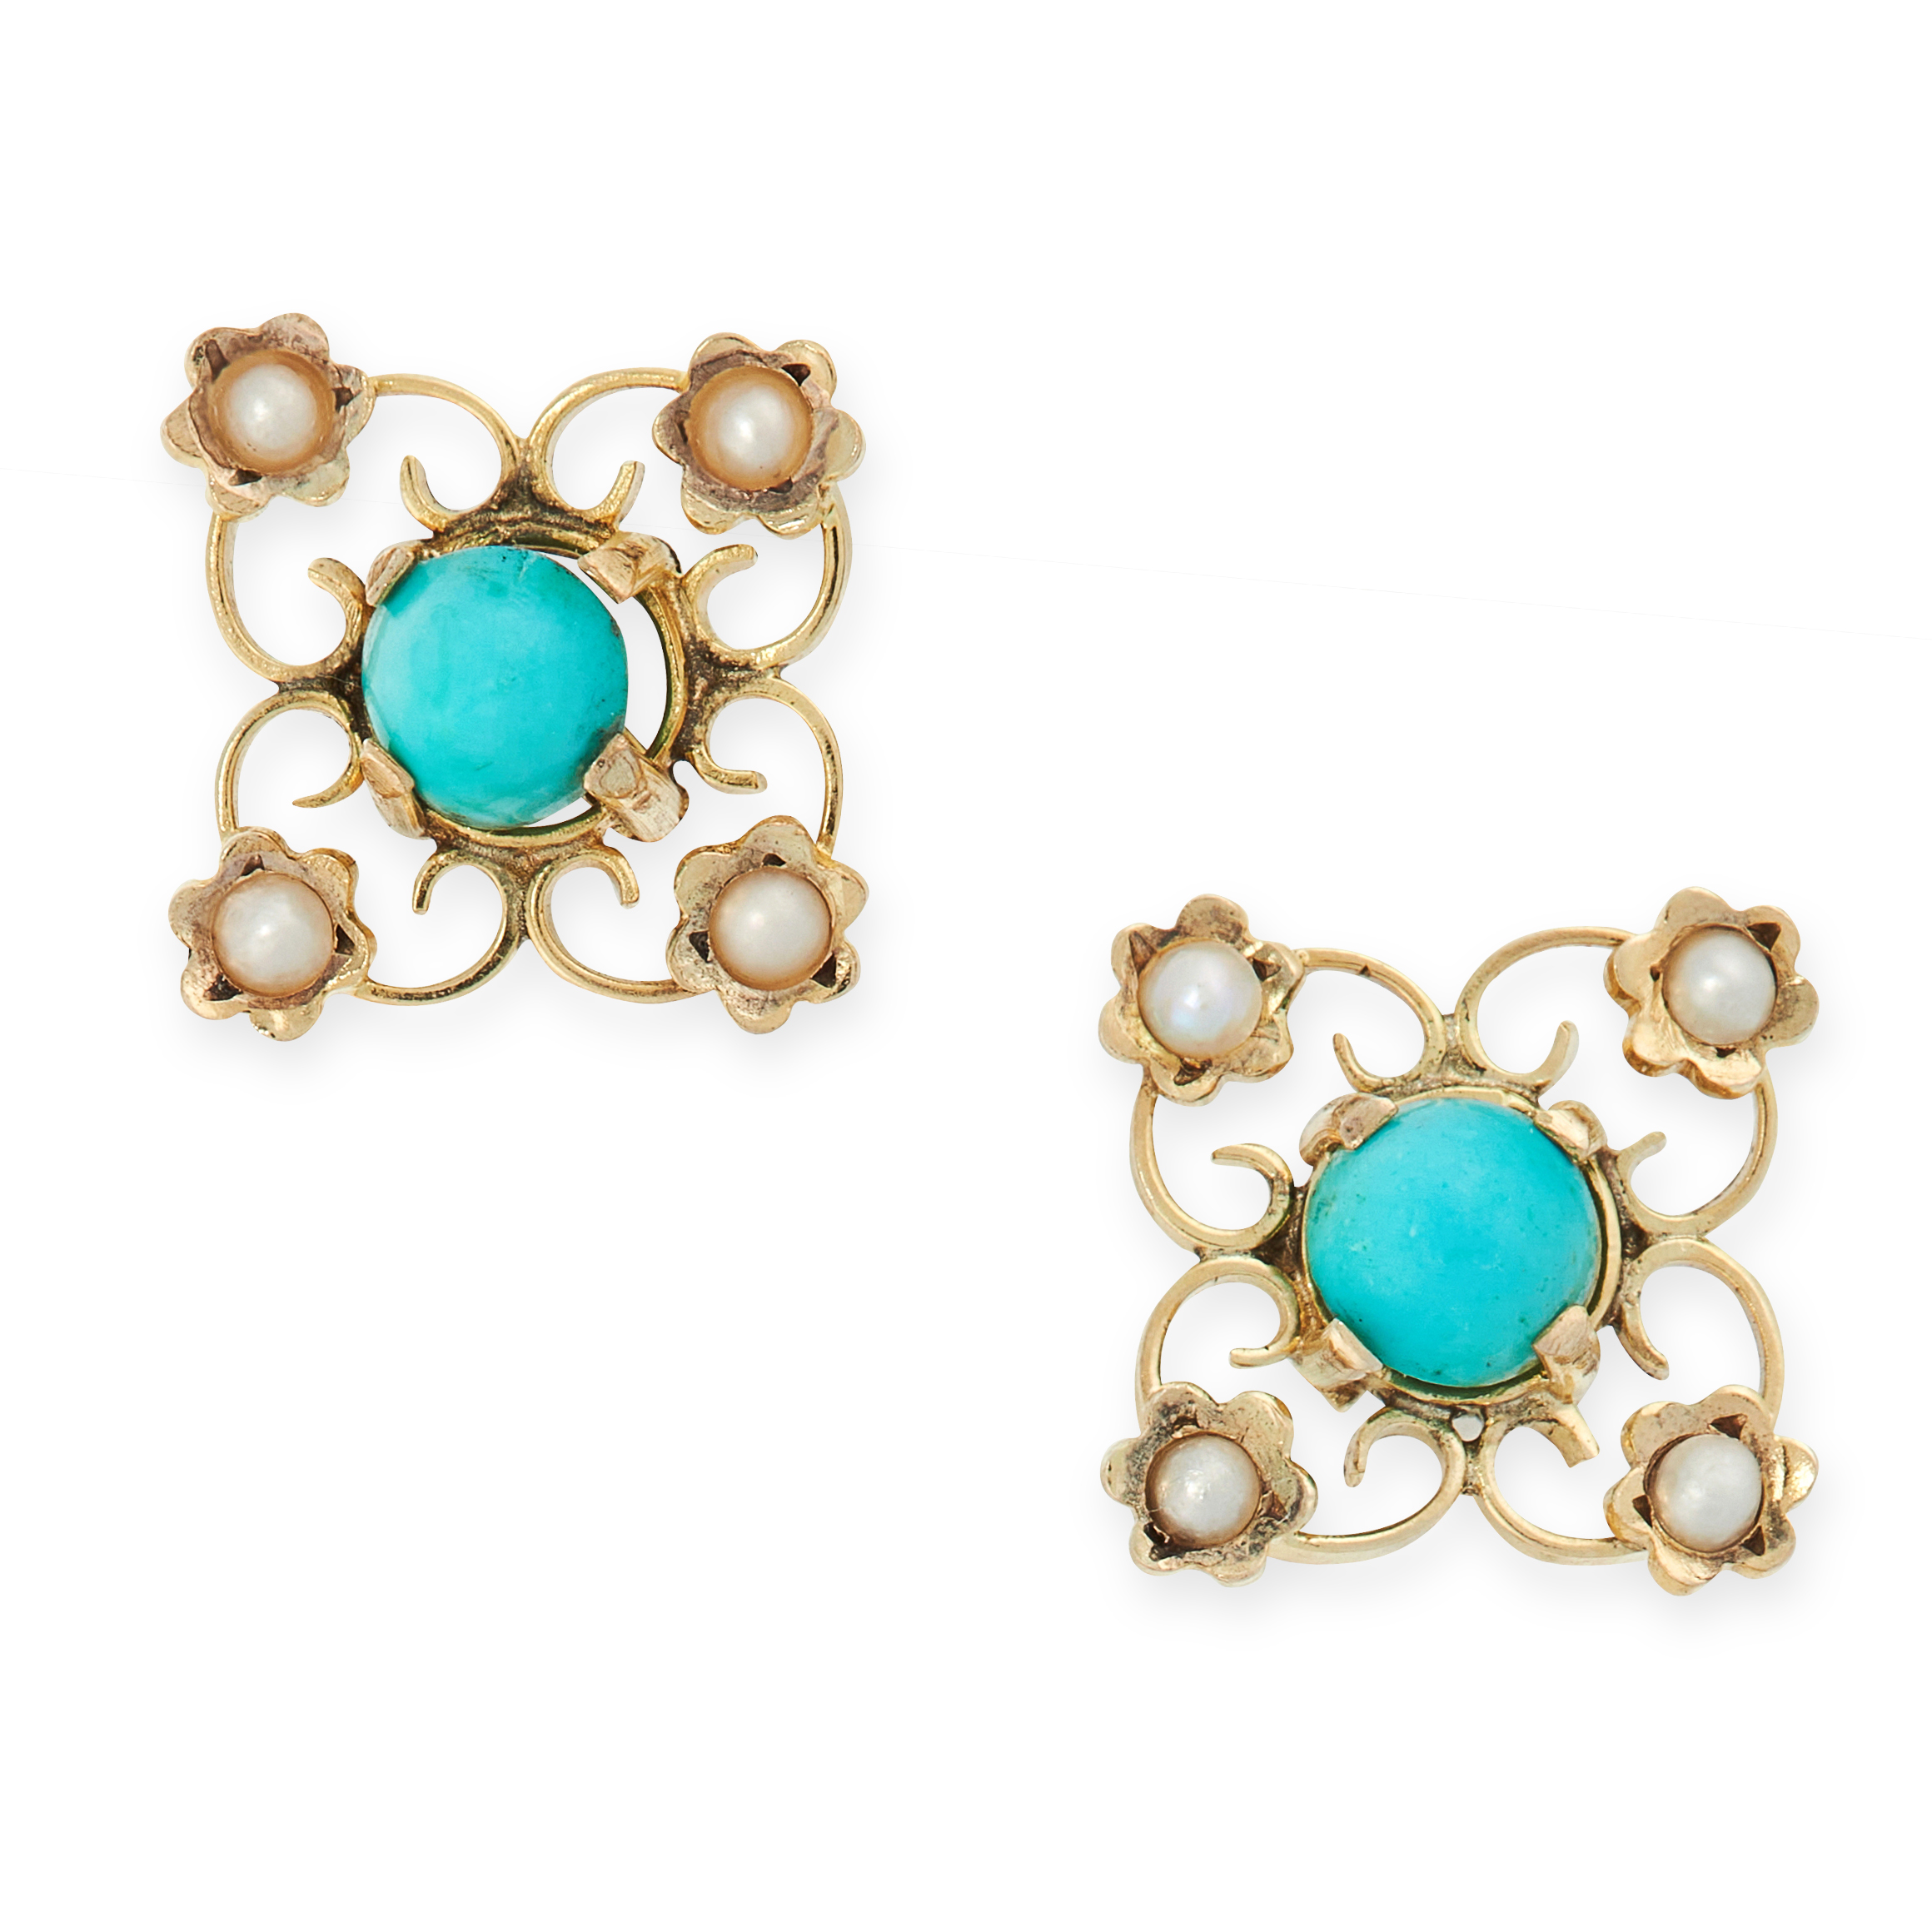 A PAIR OF ANTIQUE TURQUOISE AND PEARL STUD EARRINGS in yellow gold, each set with a cabochon